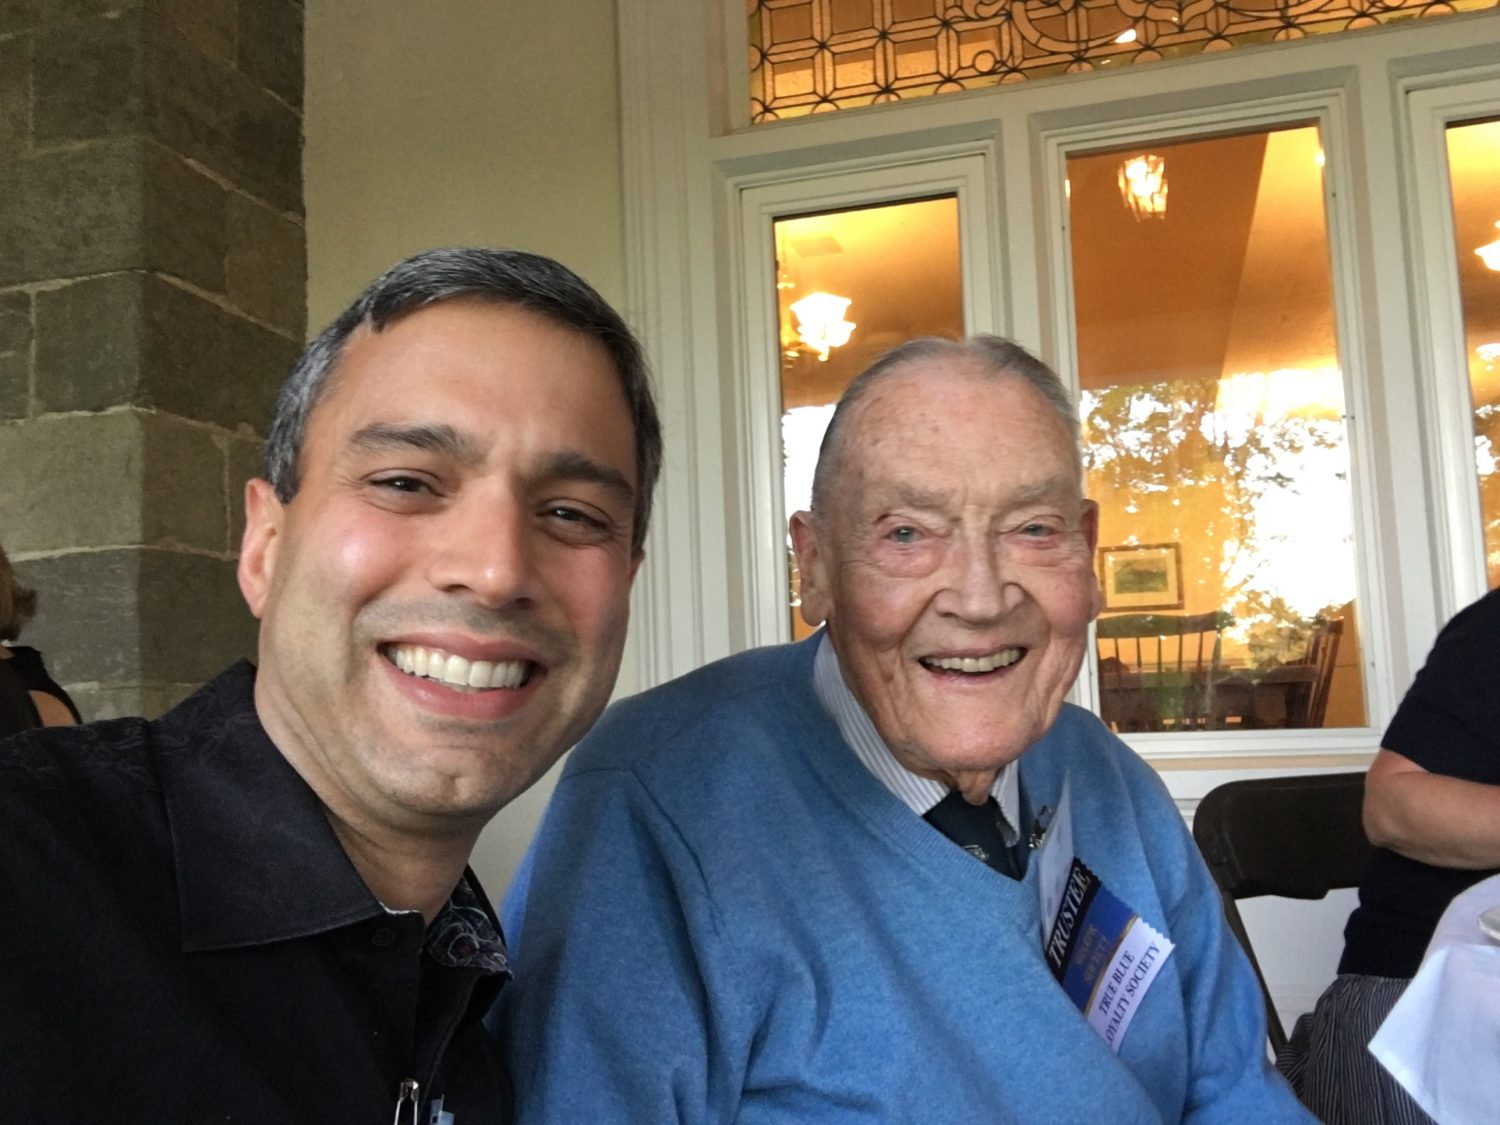 Vikram Mansharamani sits next to Jack Bogle. Photo Courtesy the author.